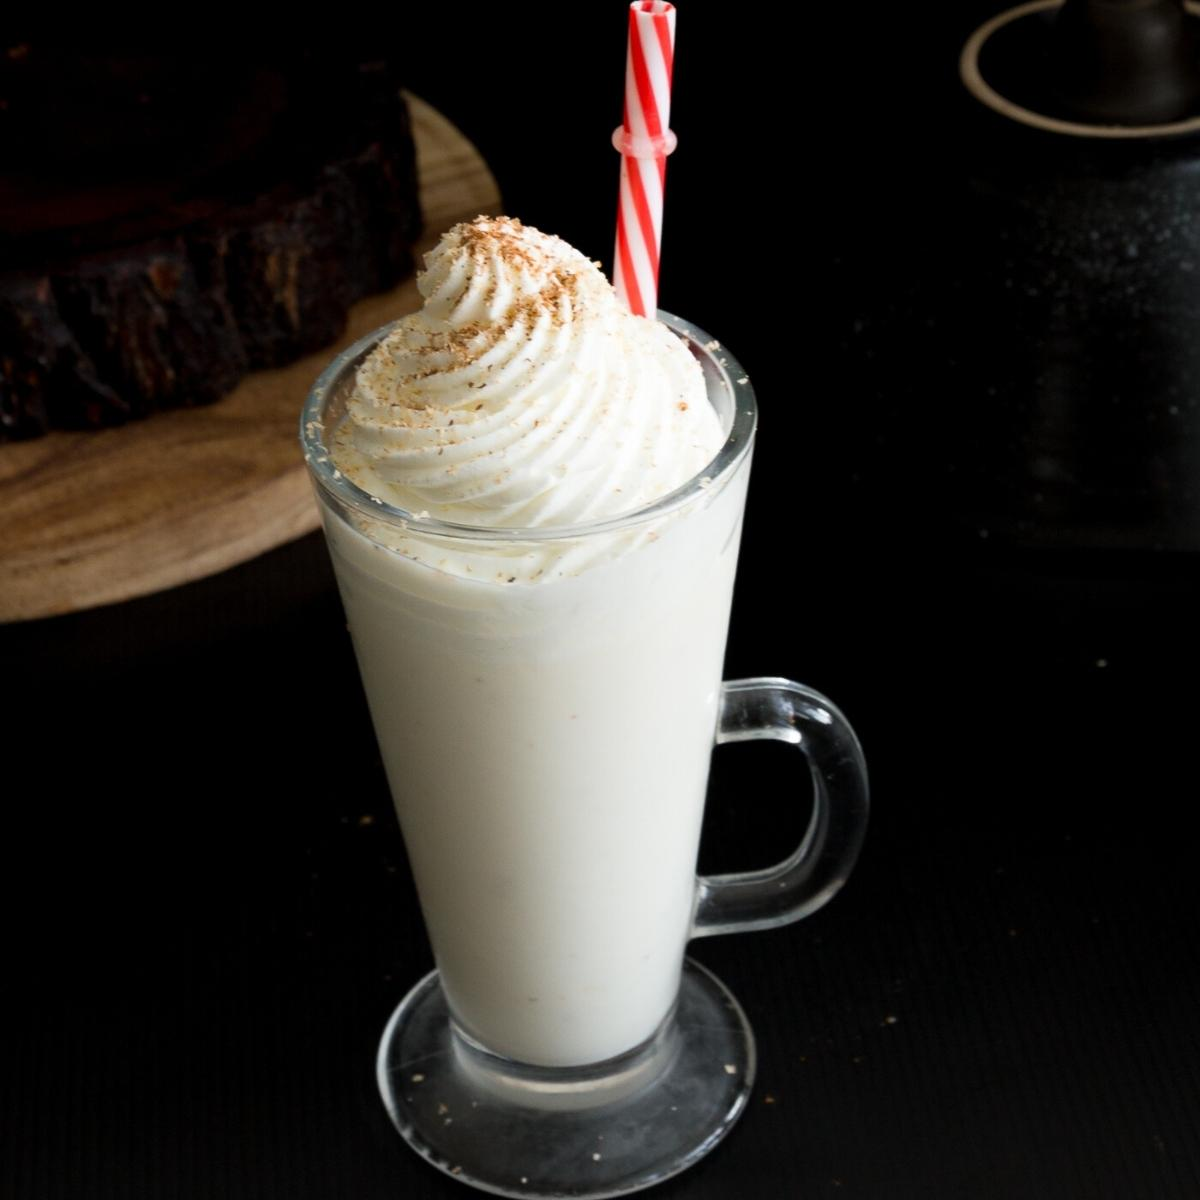 A tall glass of eggnog with whipped cream on top.